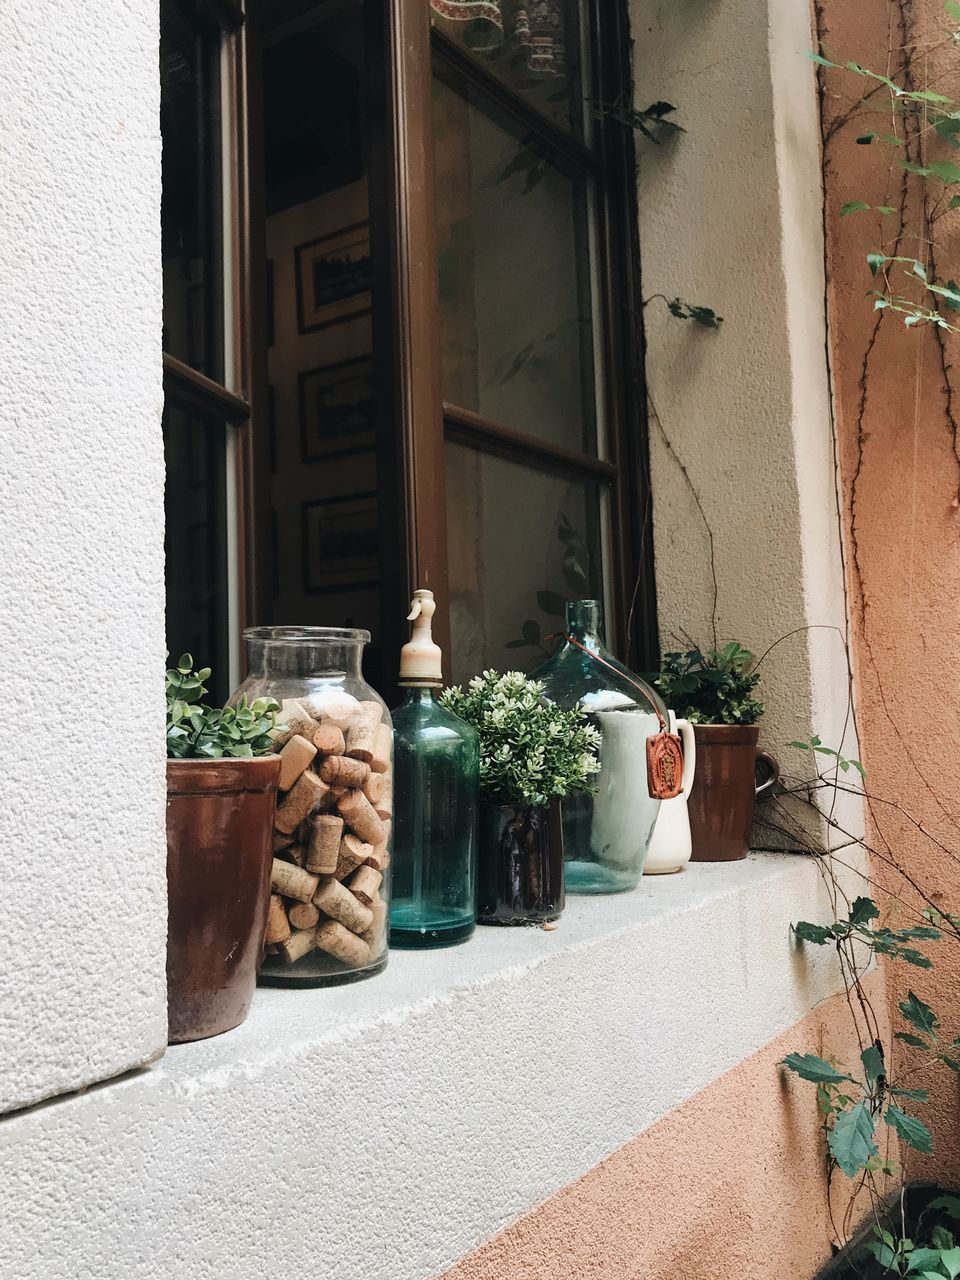 POTTED PLANTS ON WINDOW SILL BY BUILDING